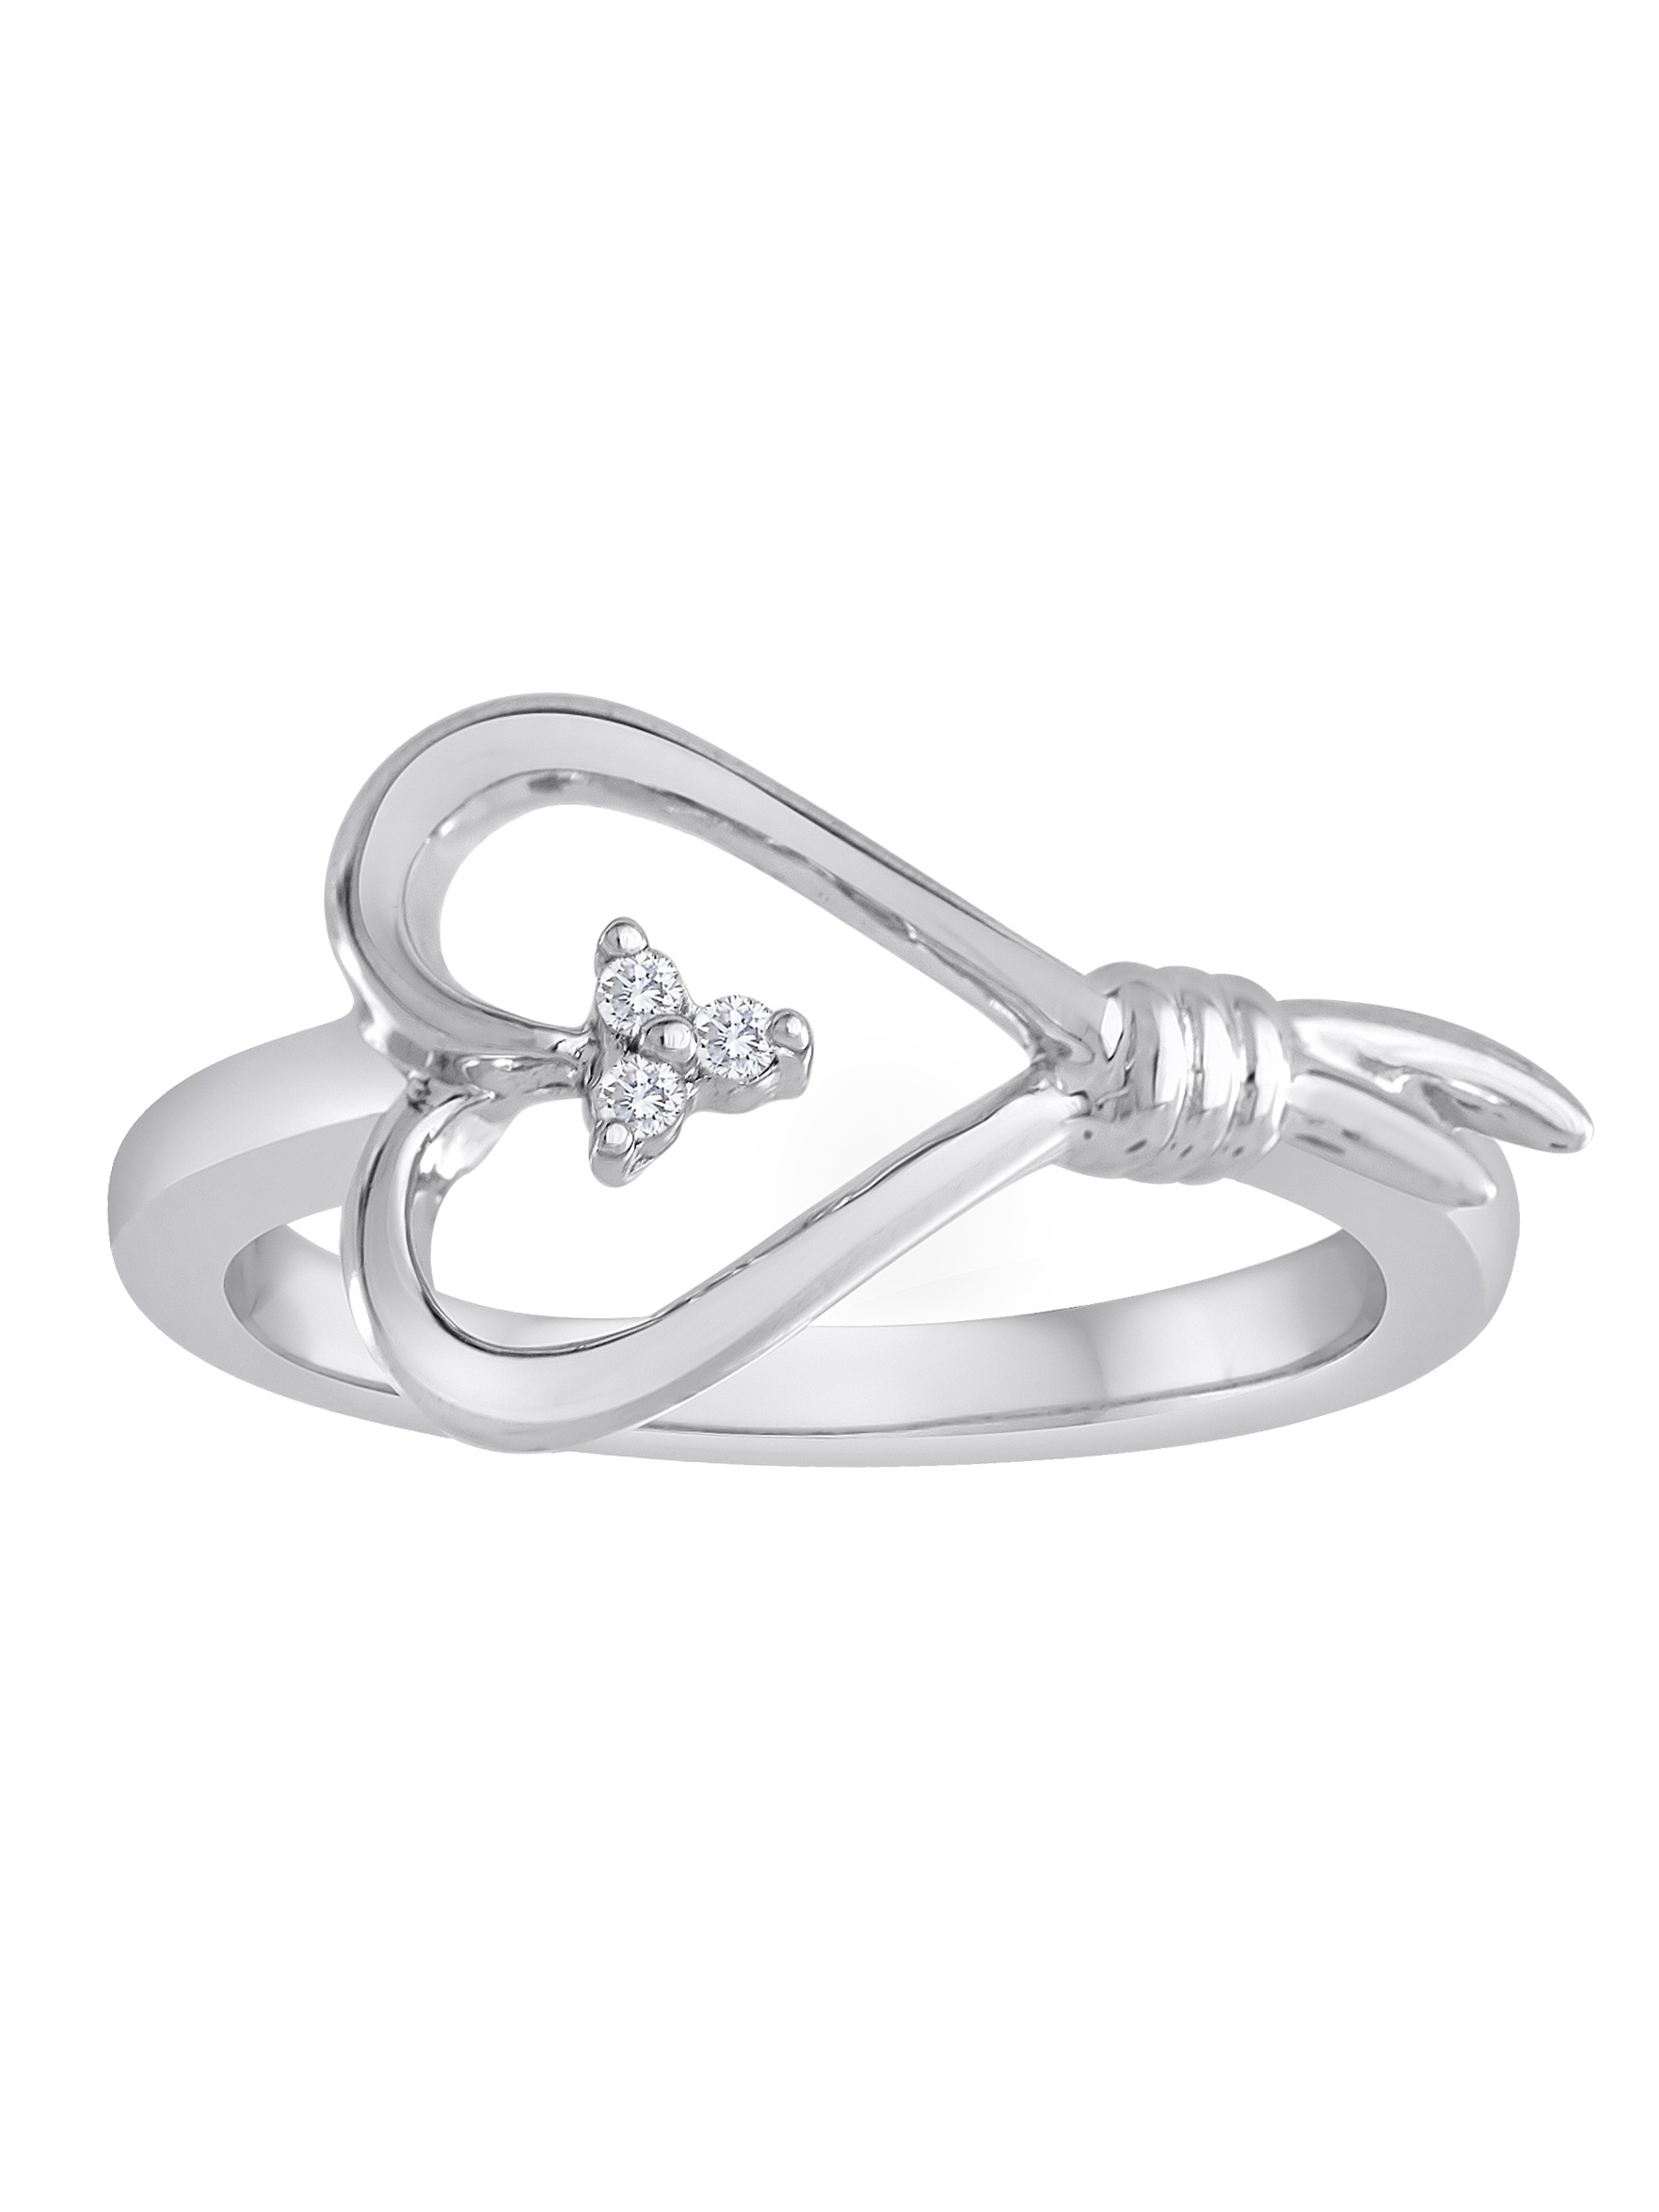 Sterling Silver and Diamond Accent Ring